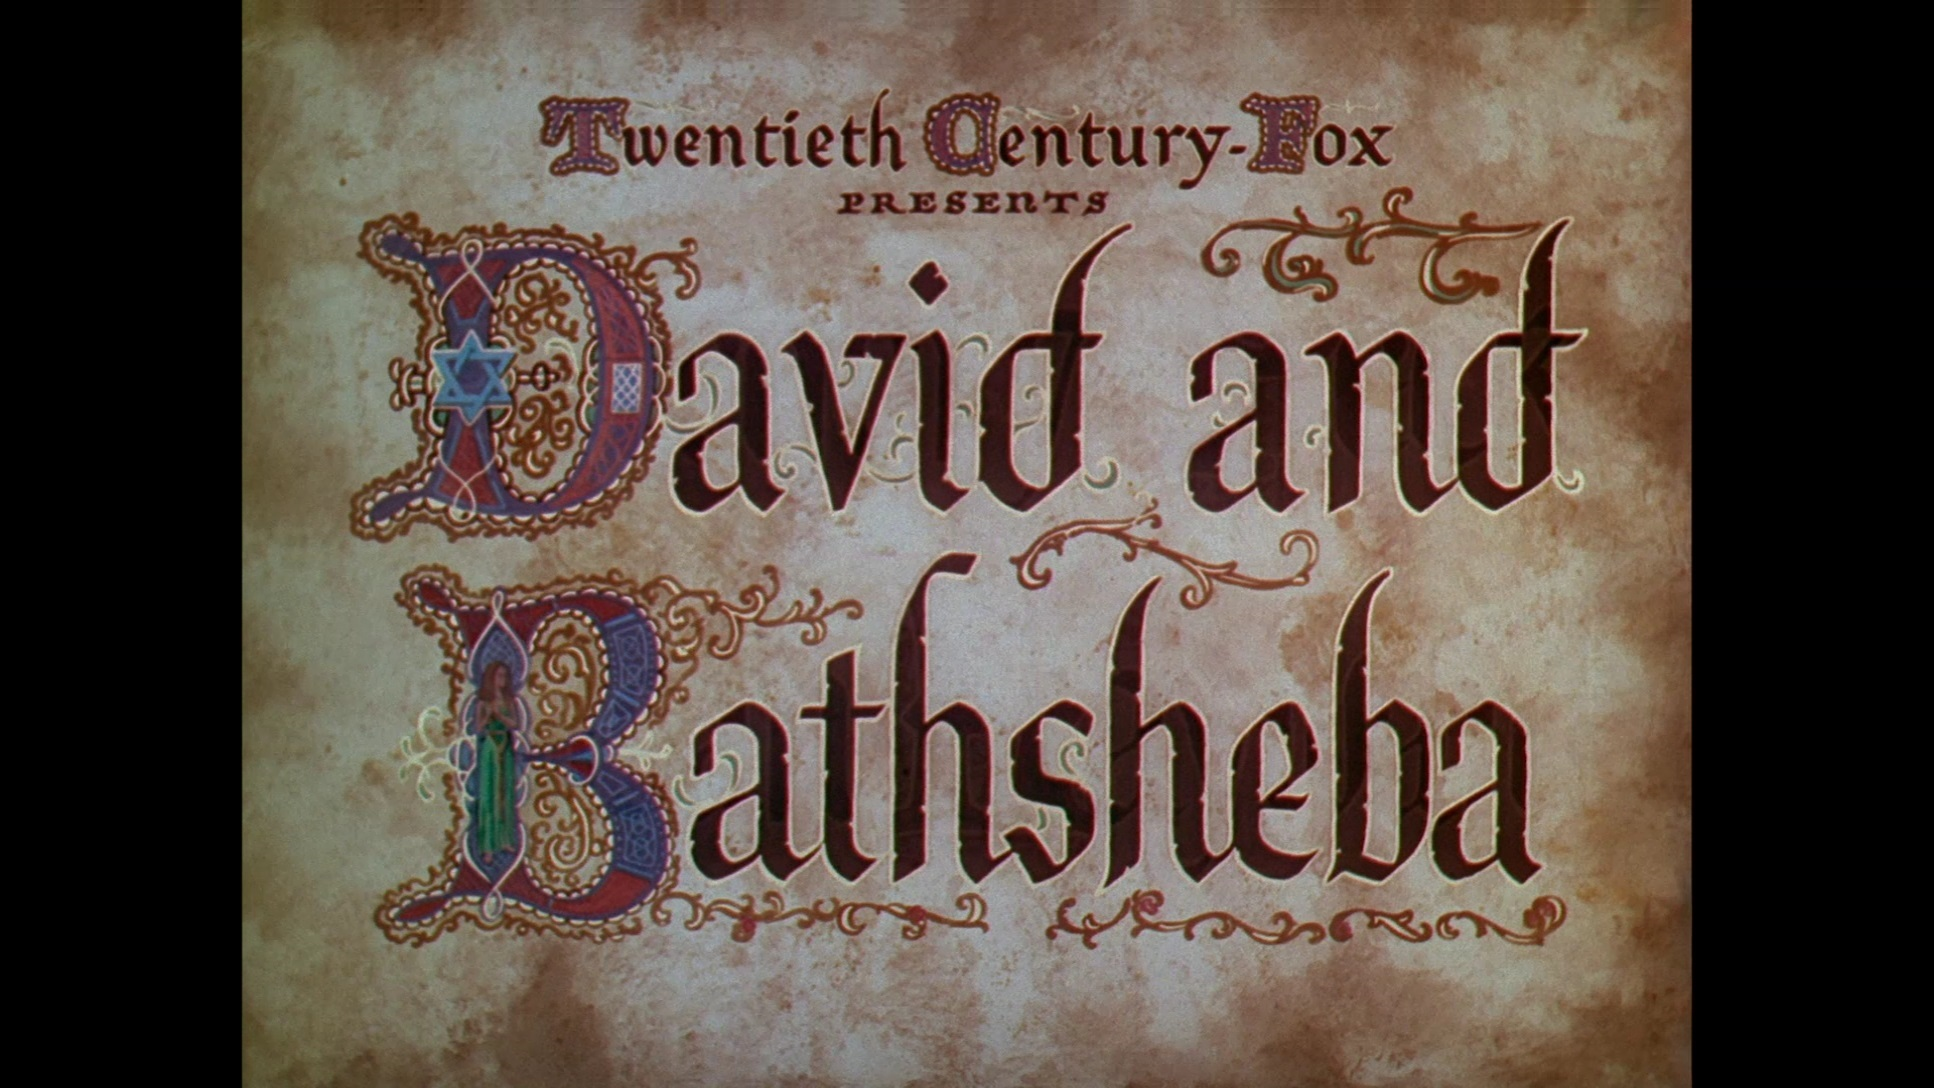 David and Bathsheba (1951) [ReUp]